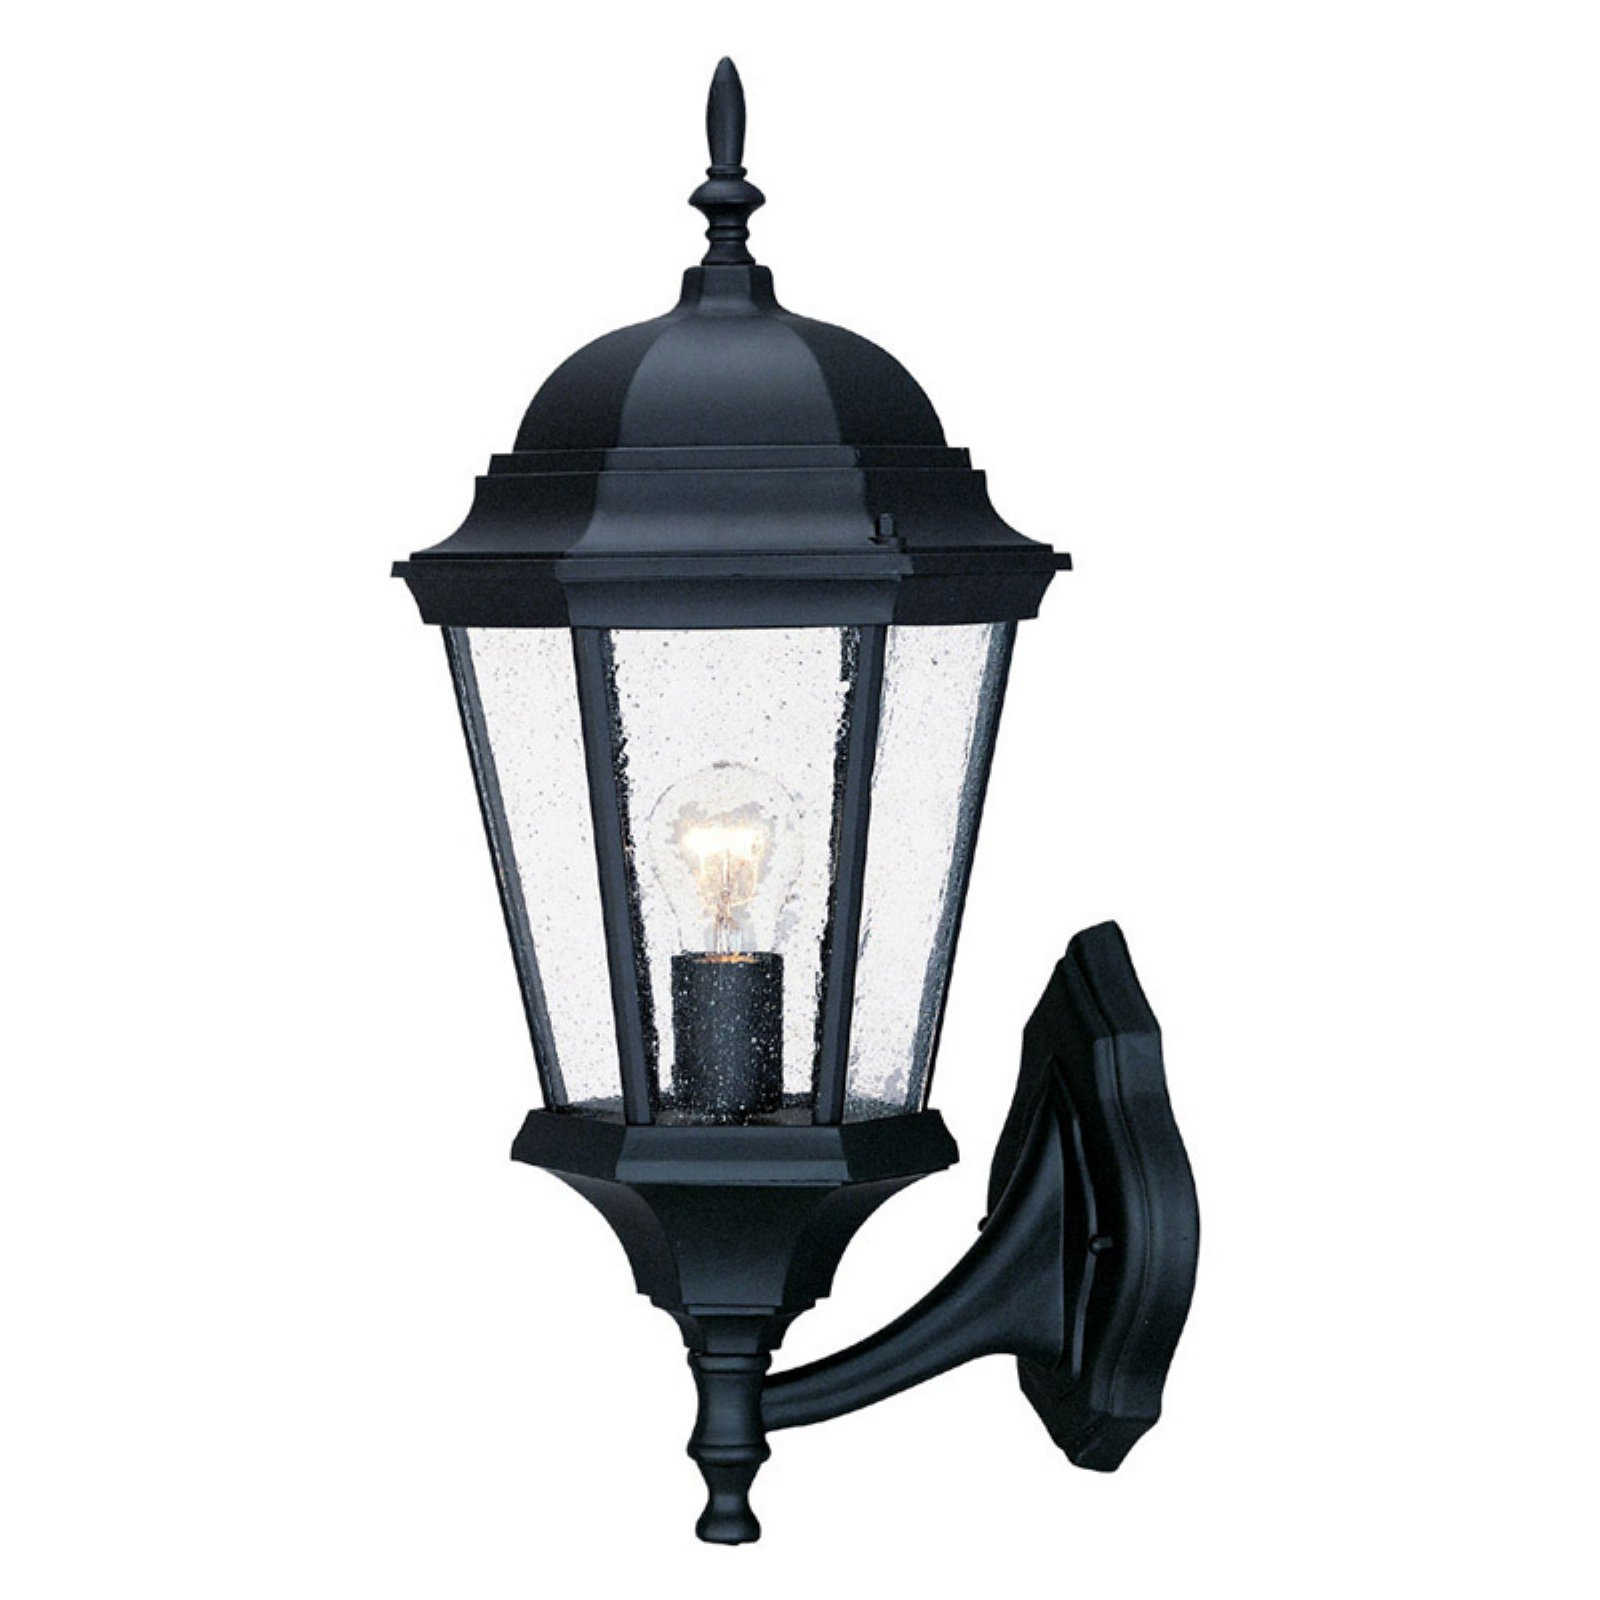 Acclaim Lighting Richmond 9 in. Outdoor Wall Mount Light Fixture